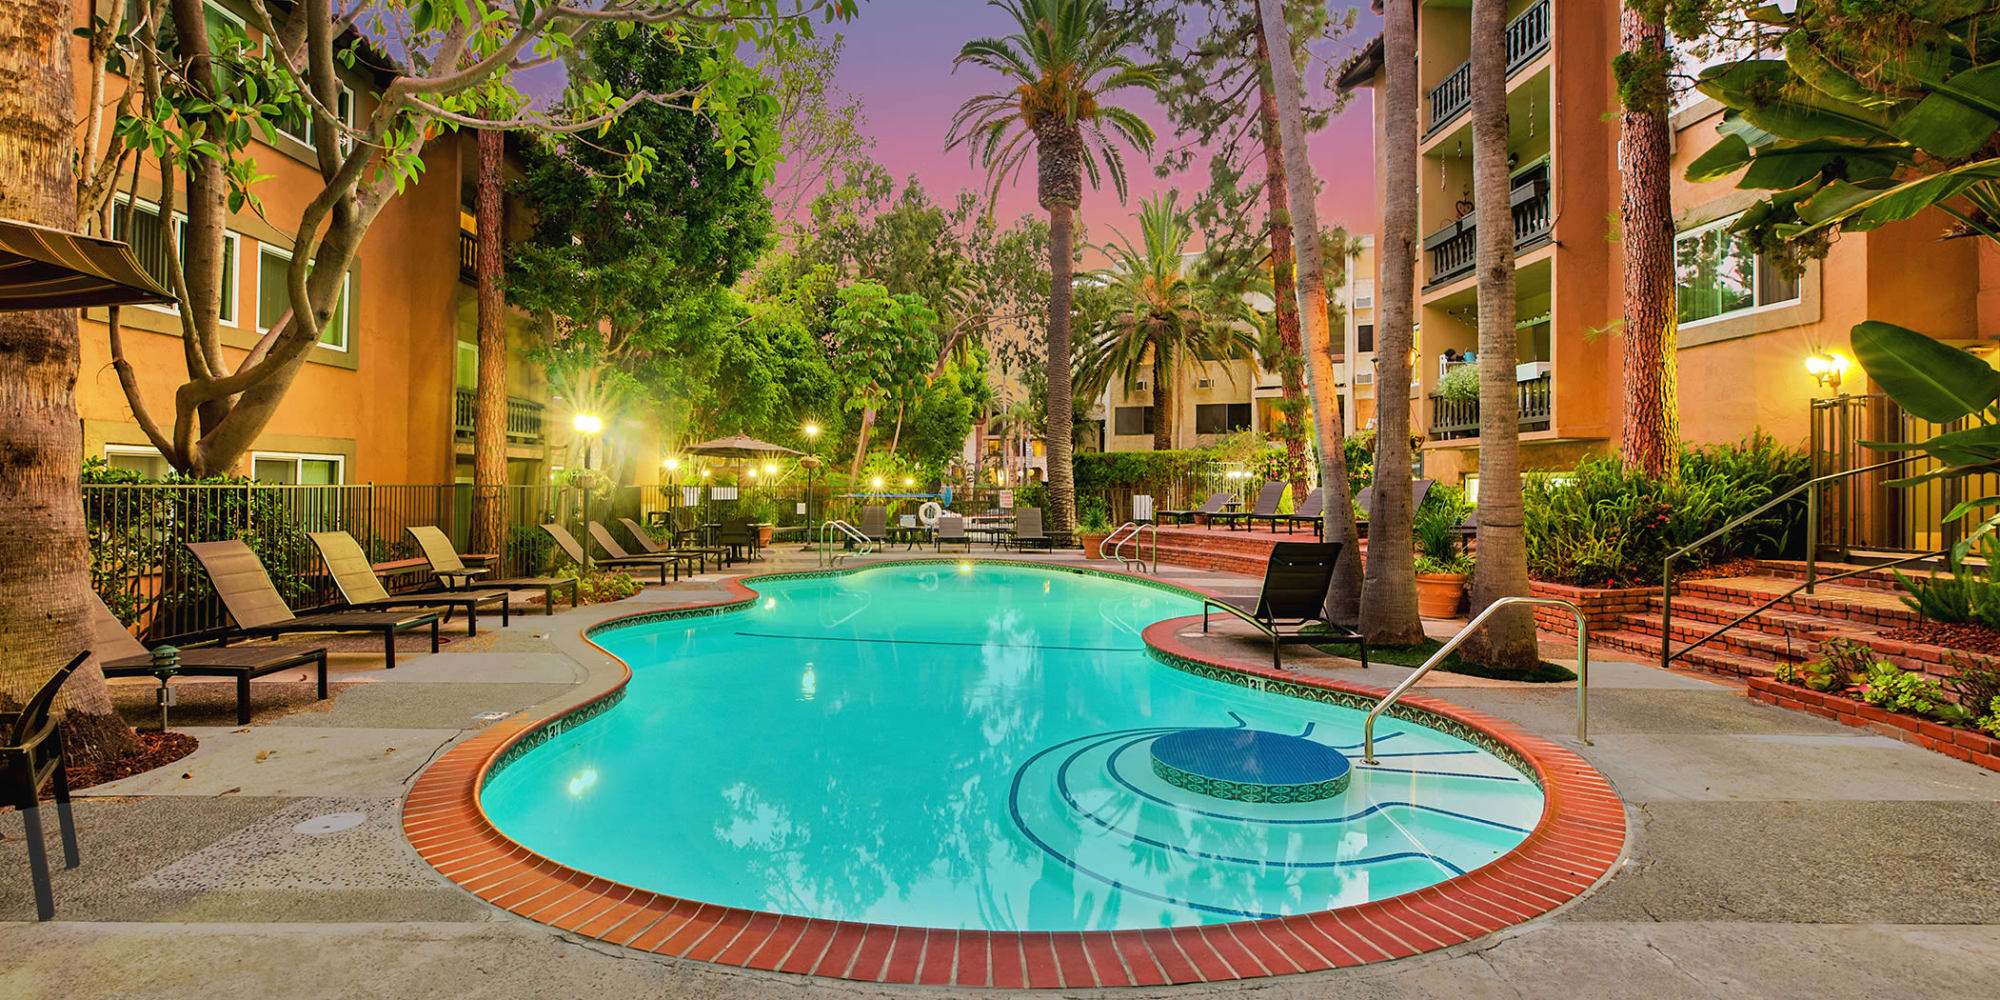 Early twilight at the swimming pool area surrounded by palm trees and lounge chairs at Casa Granada in Los Angeles, California